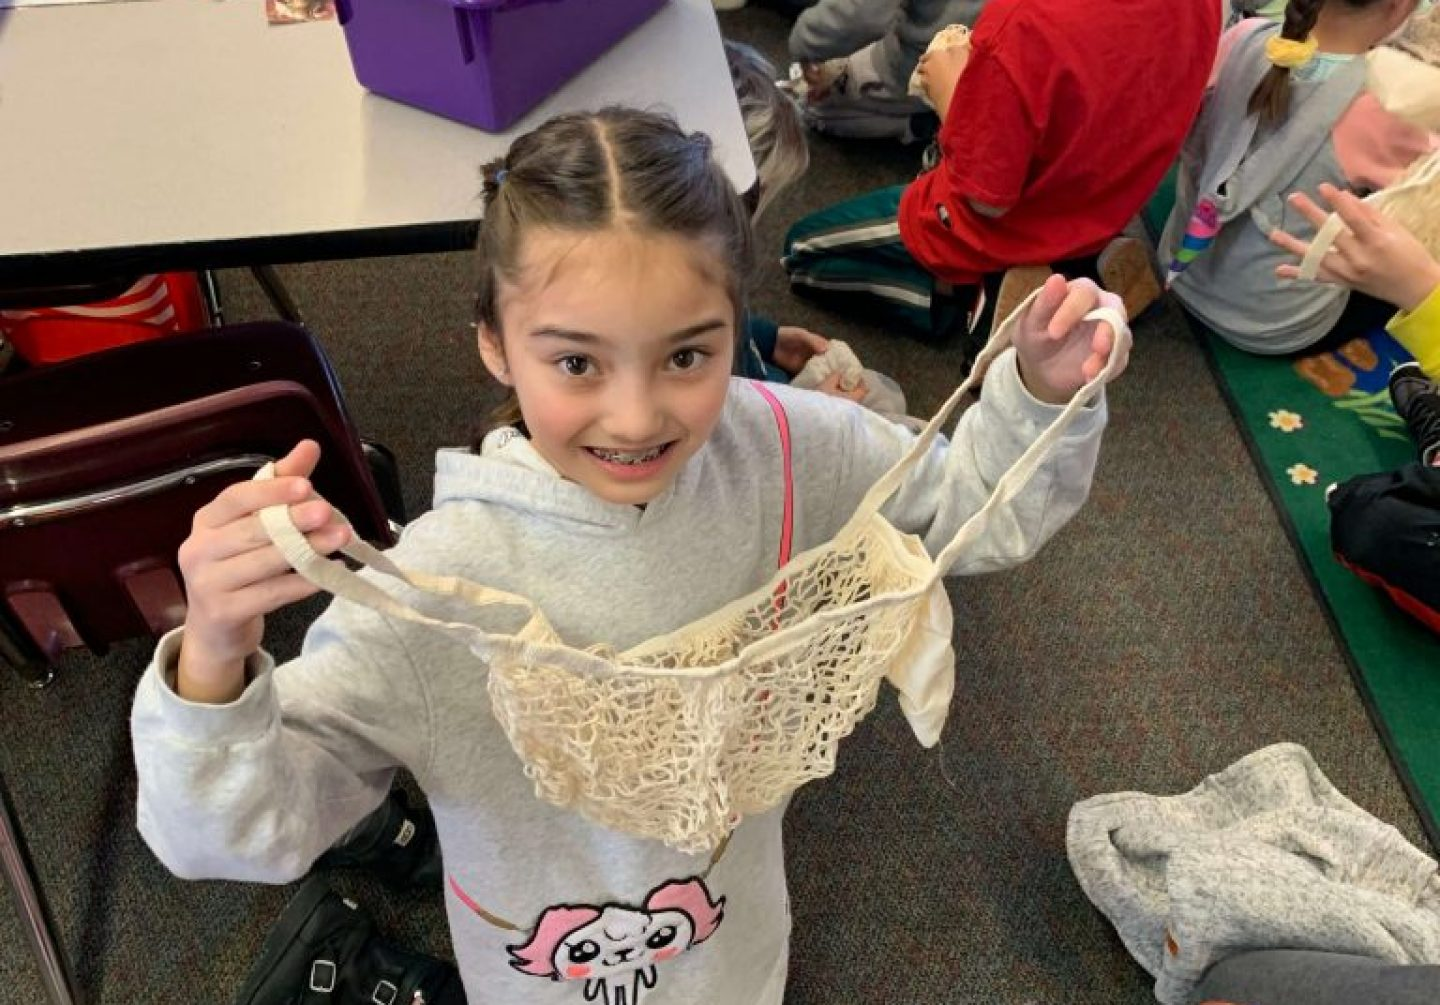 Girl holding UnEARTH Netted Bag